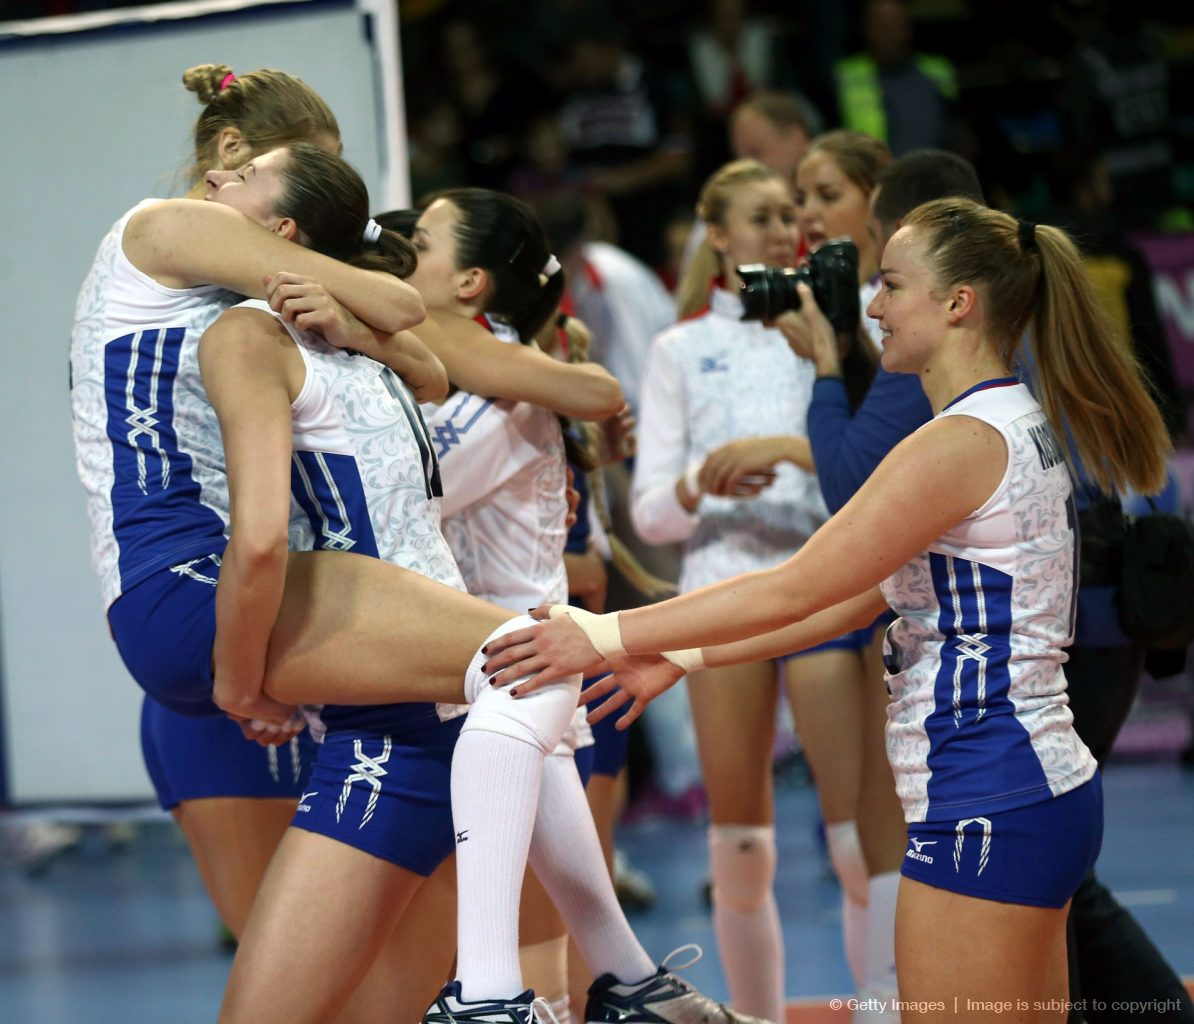 VOLLEY-OLY-WOMEN-NED-RUS